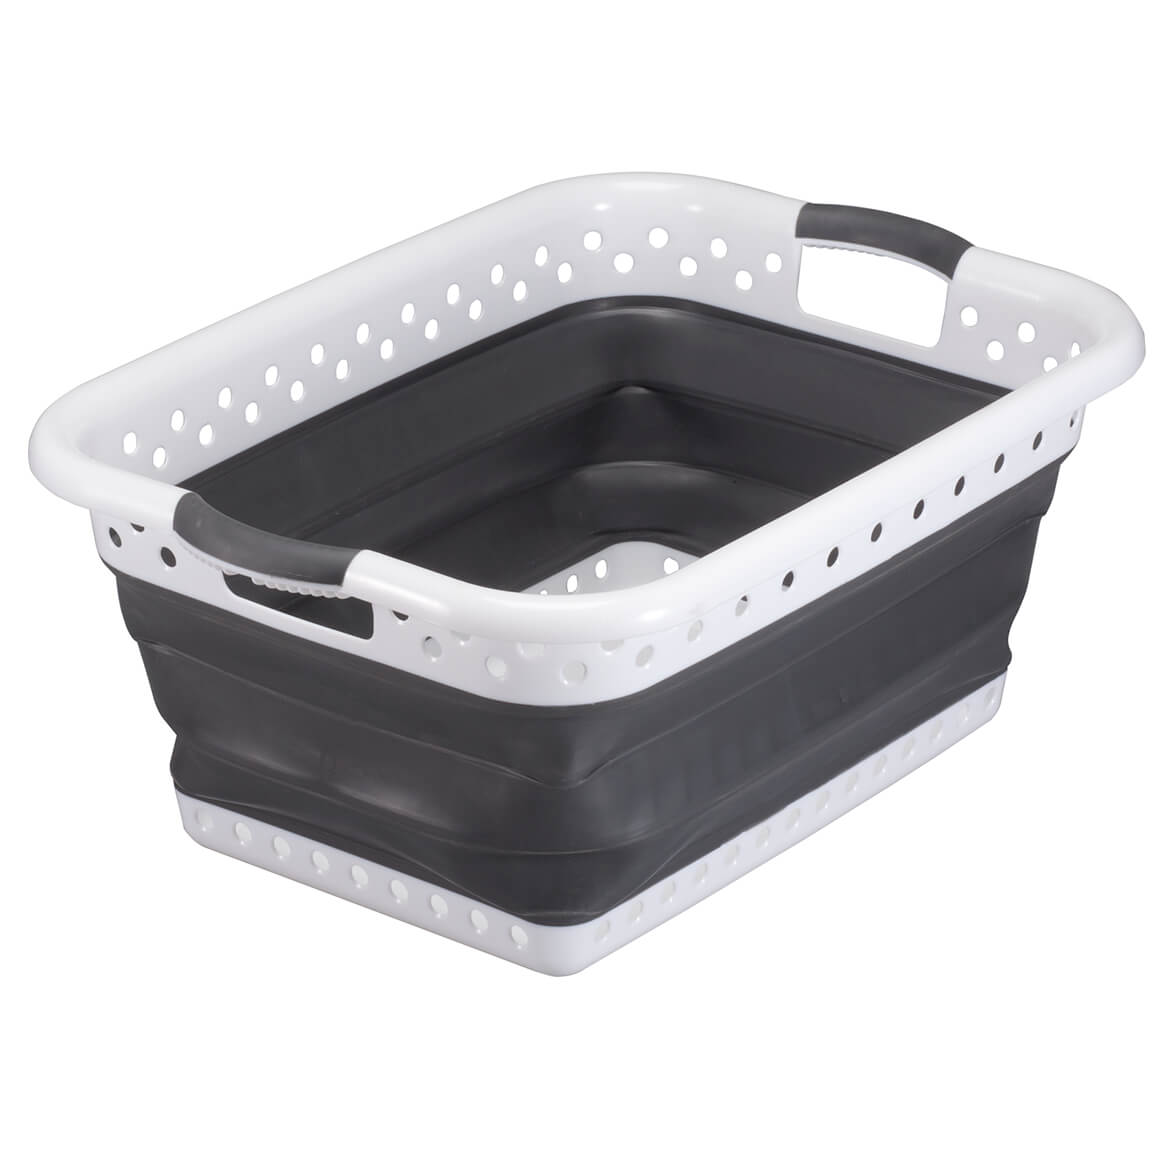 Miles Kimball Collapsible Laundry Basket